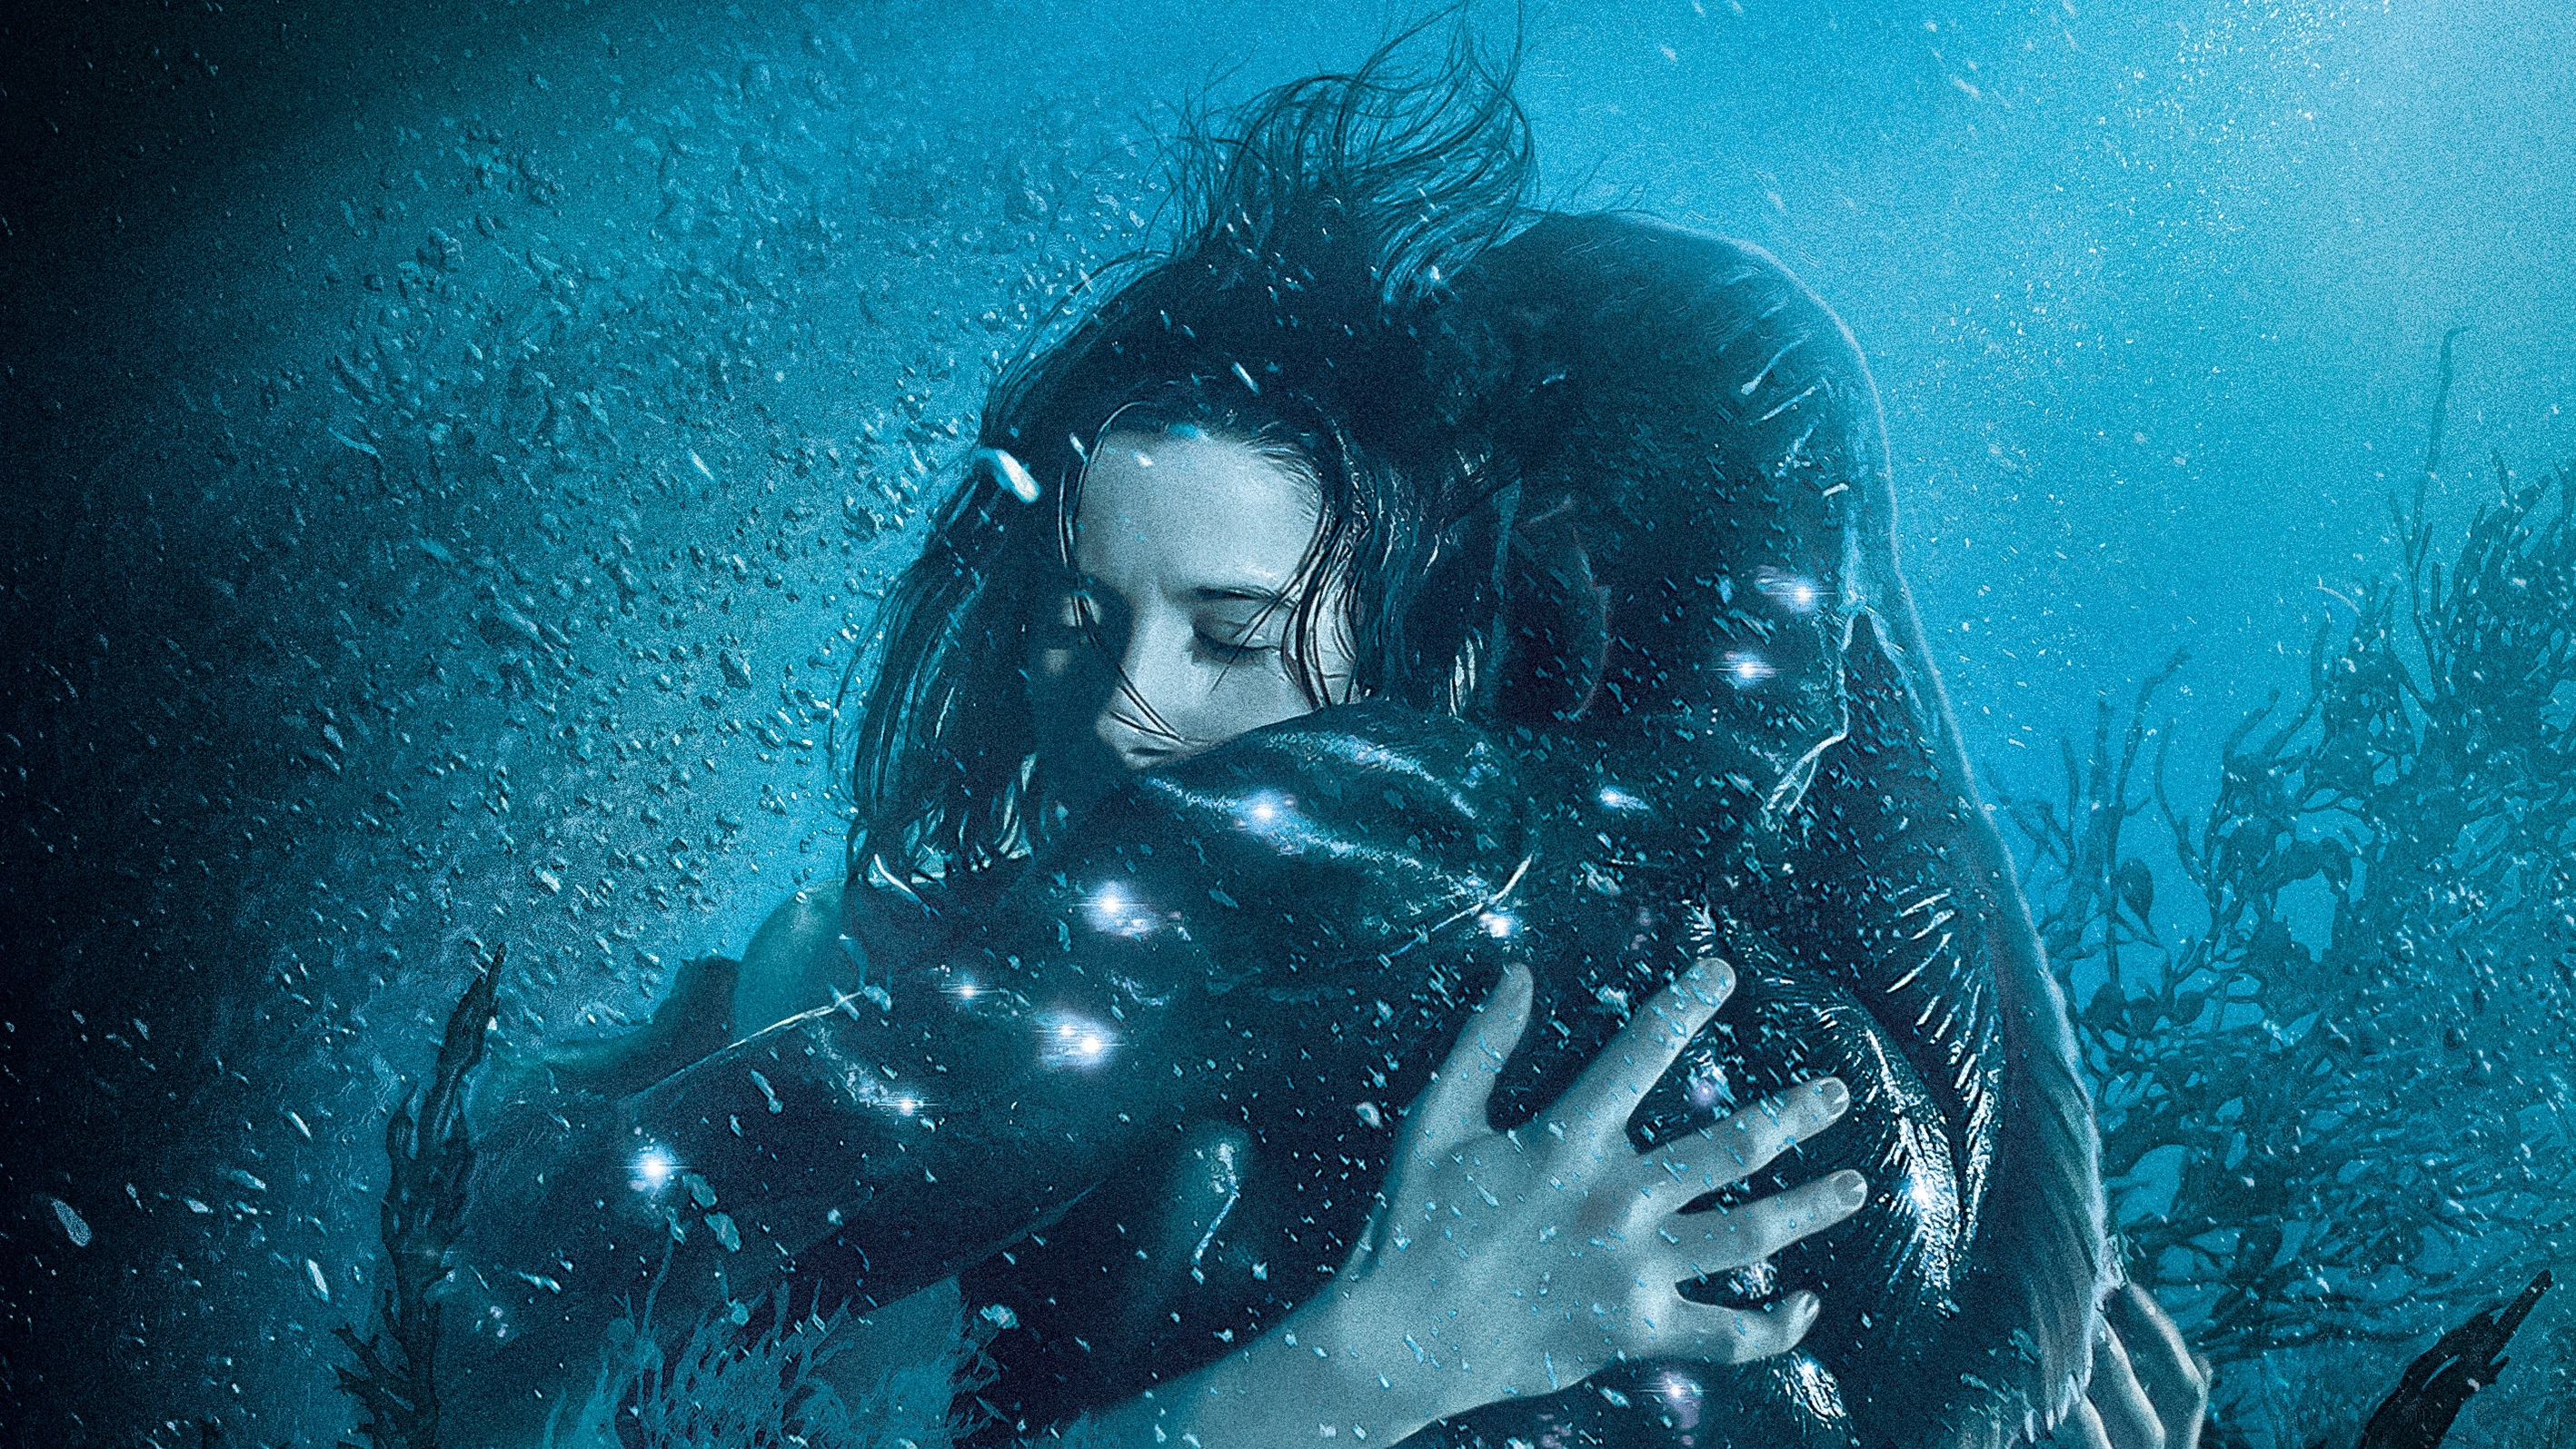 27 the shape of water hd wallpapers | background images - wallpaper